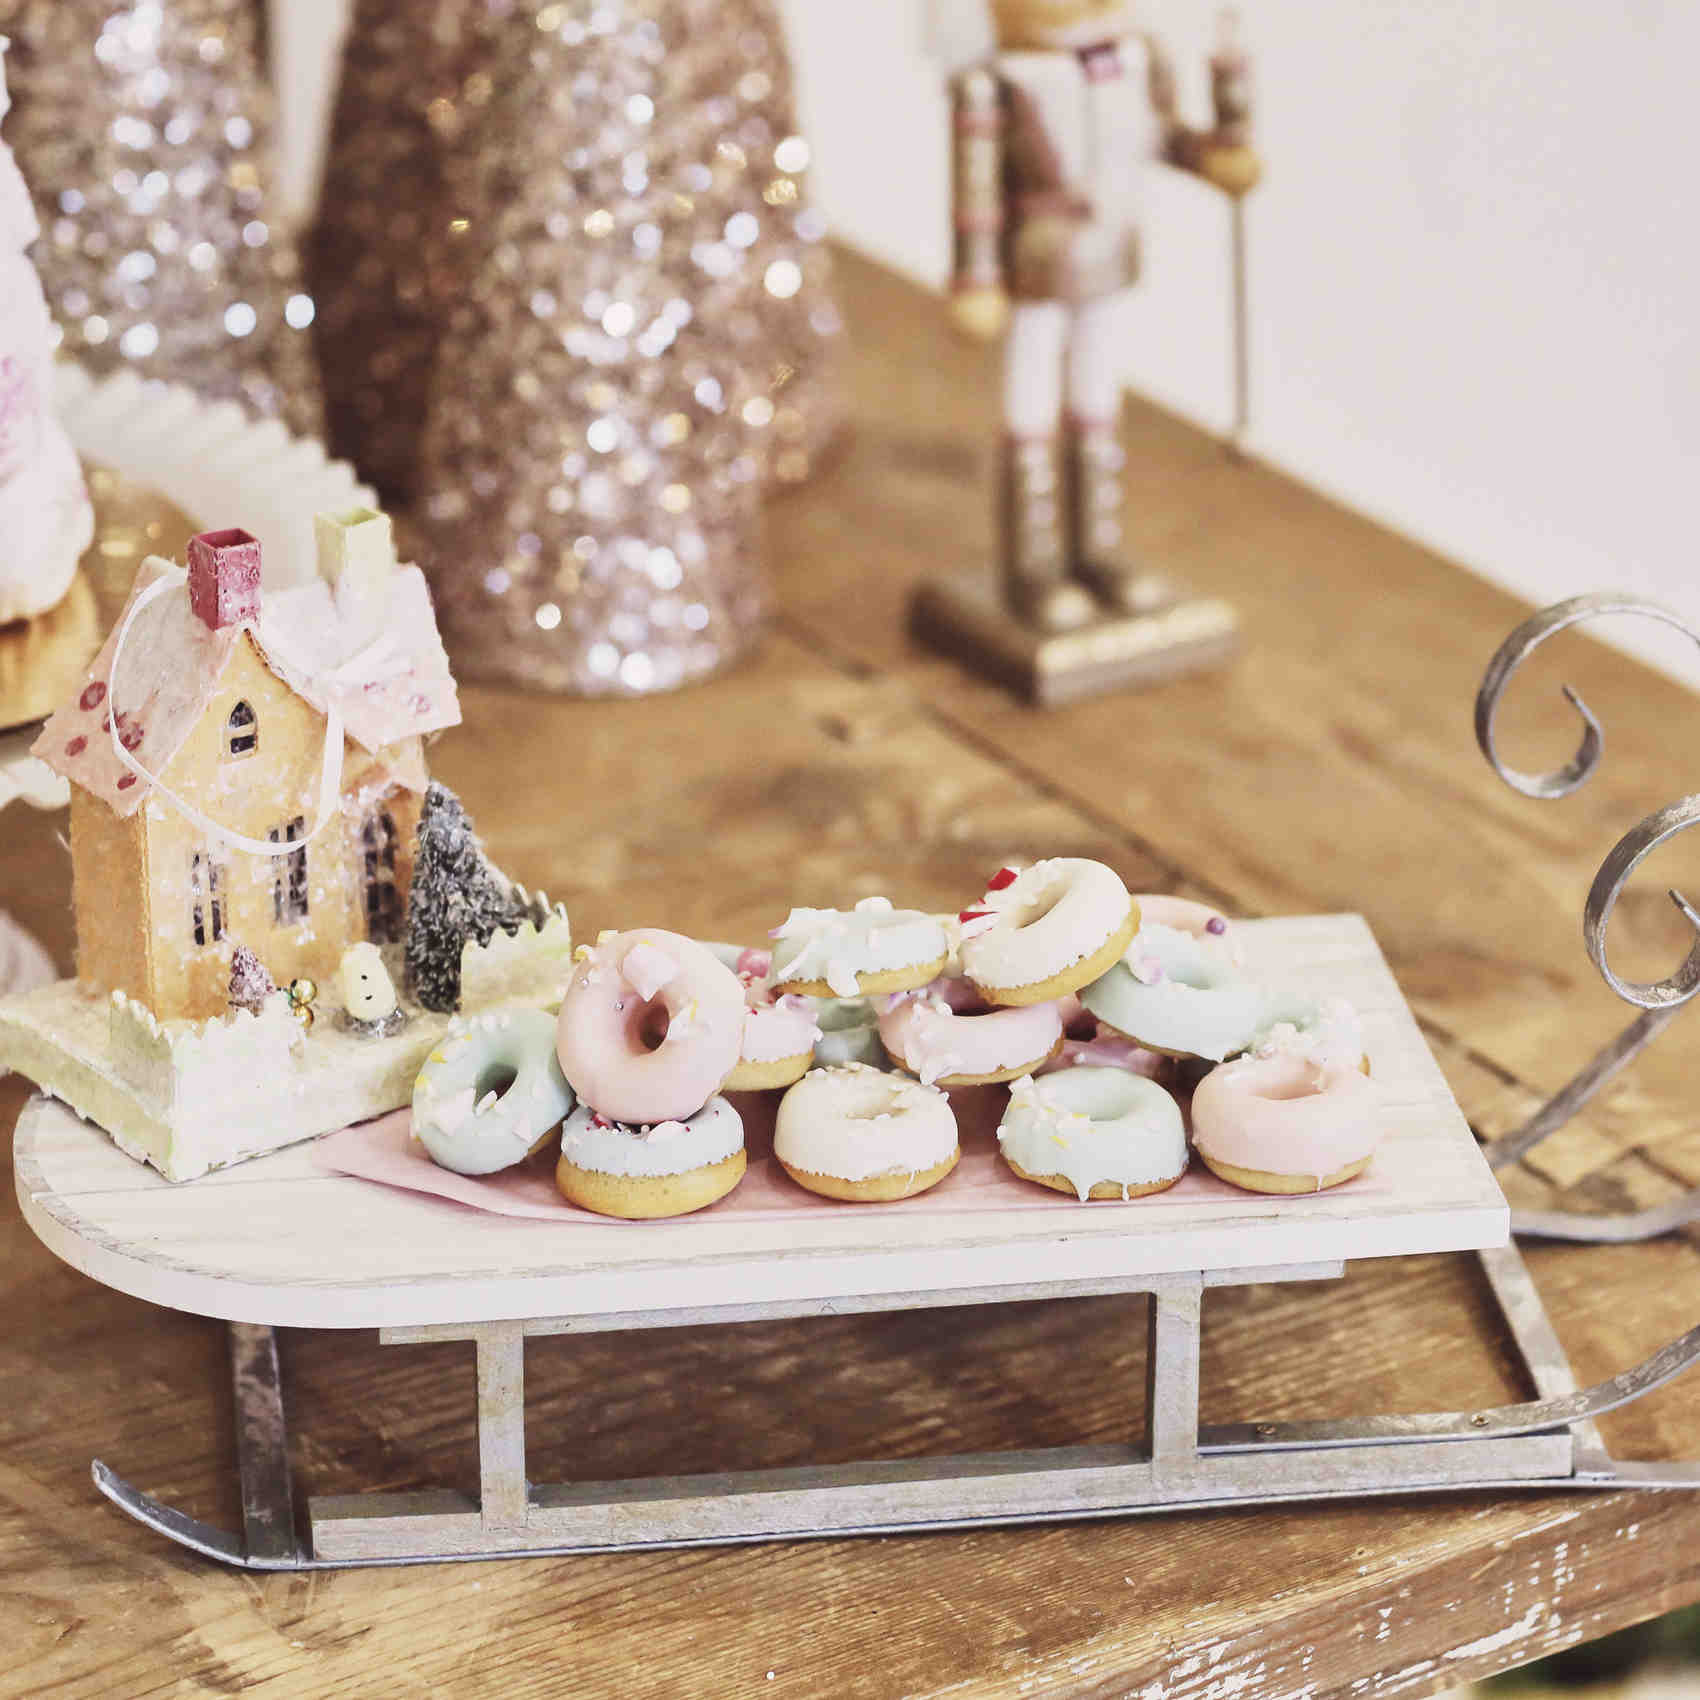 Dancing Sugar Plums! It's a Nutcracker-Inspired Birthday Party for Stella